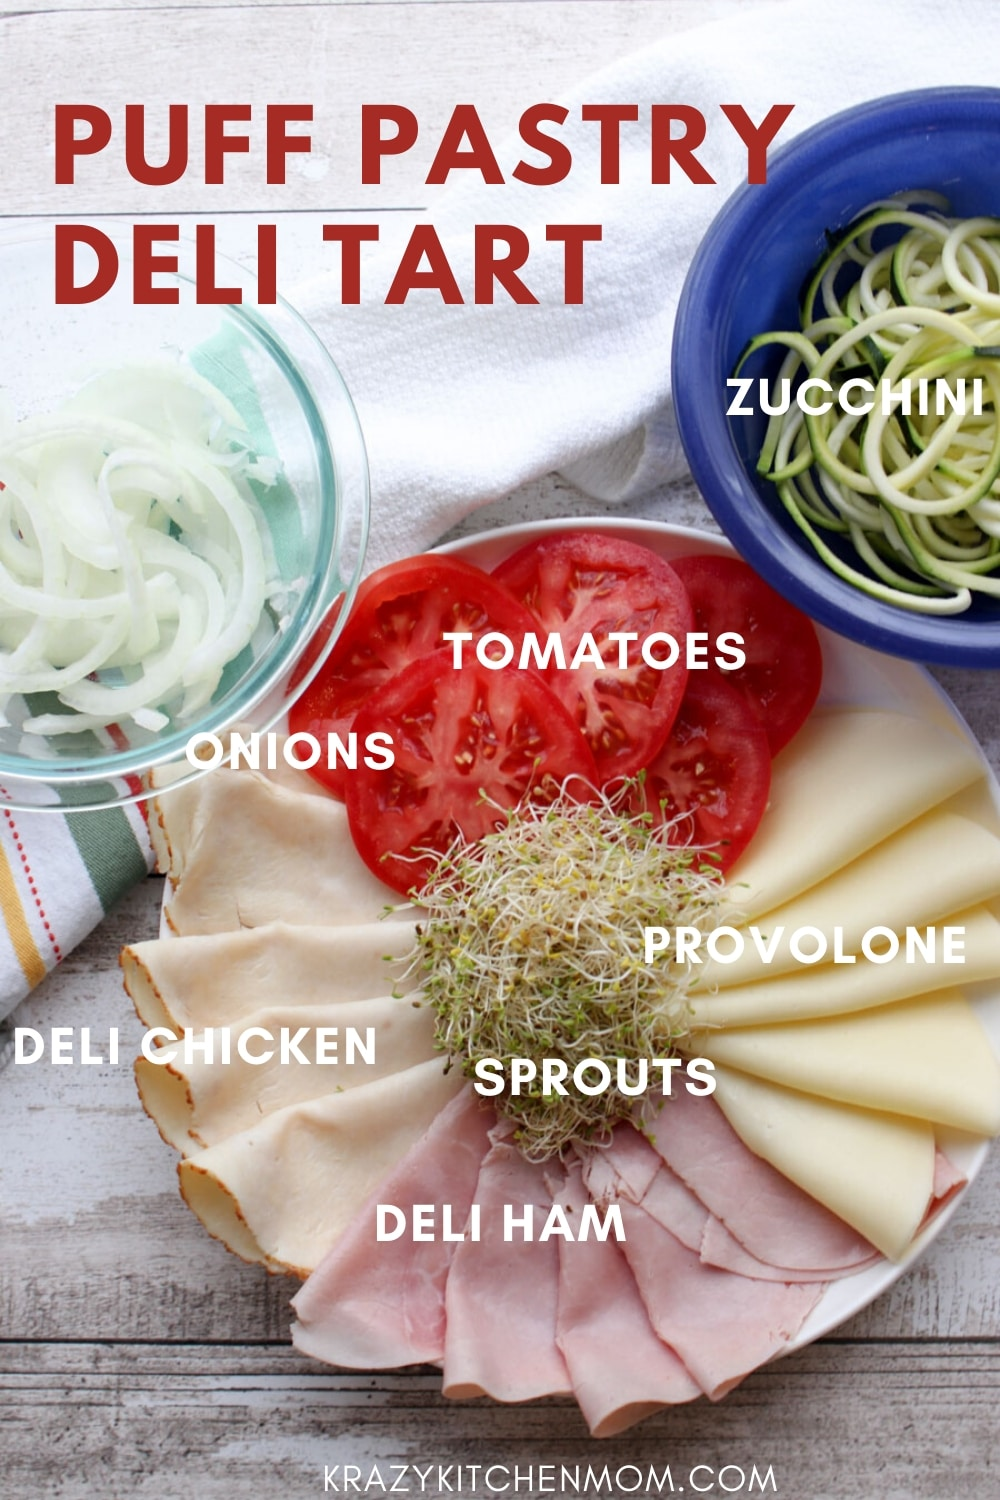 My Puff Pastry Deli Tart is a fresh way to make an open-faced deli sandwich perfect for springtime. It's made with freezer puff pastry, deli meats and cheese, and fresh vegetables.  via @krazykitchenmom